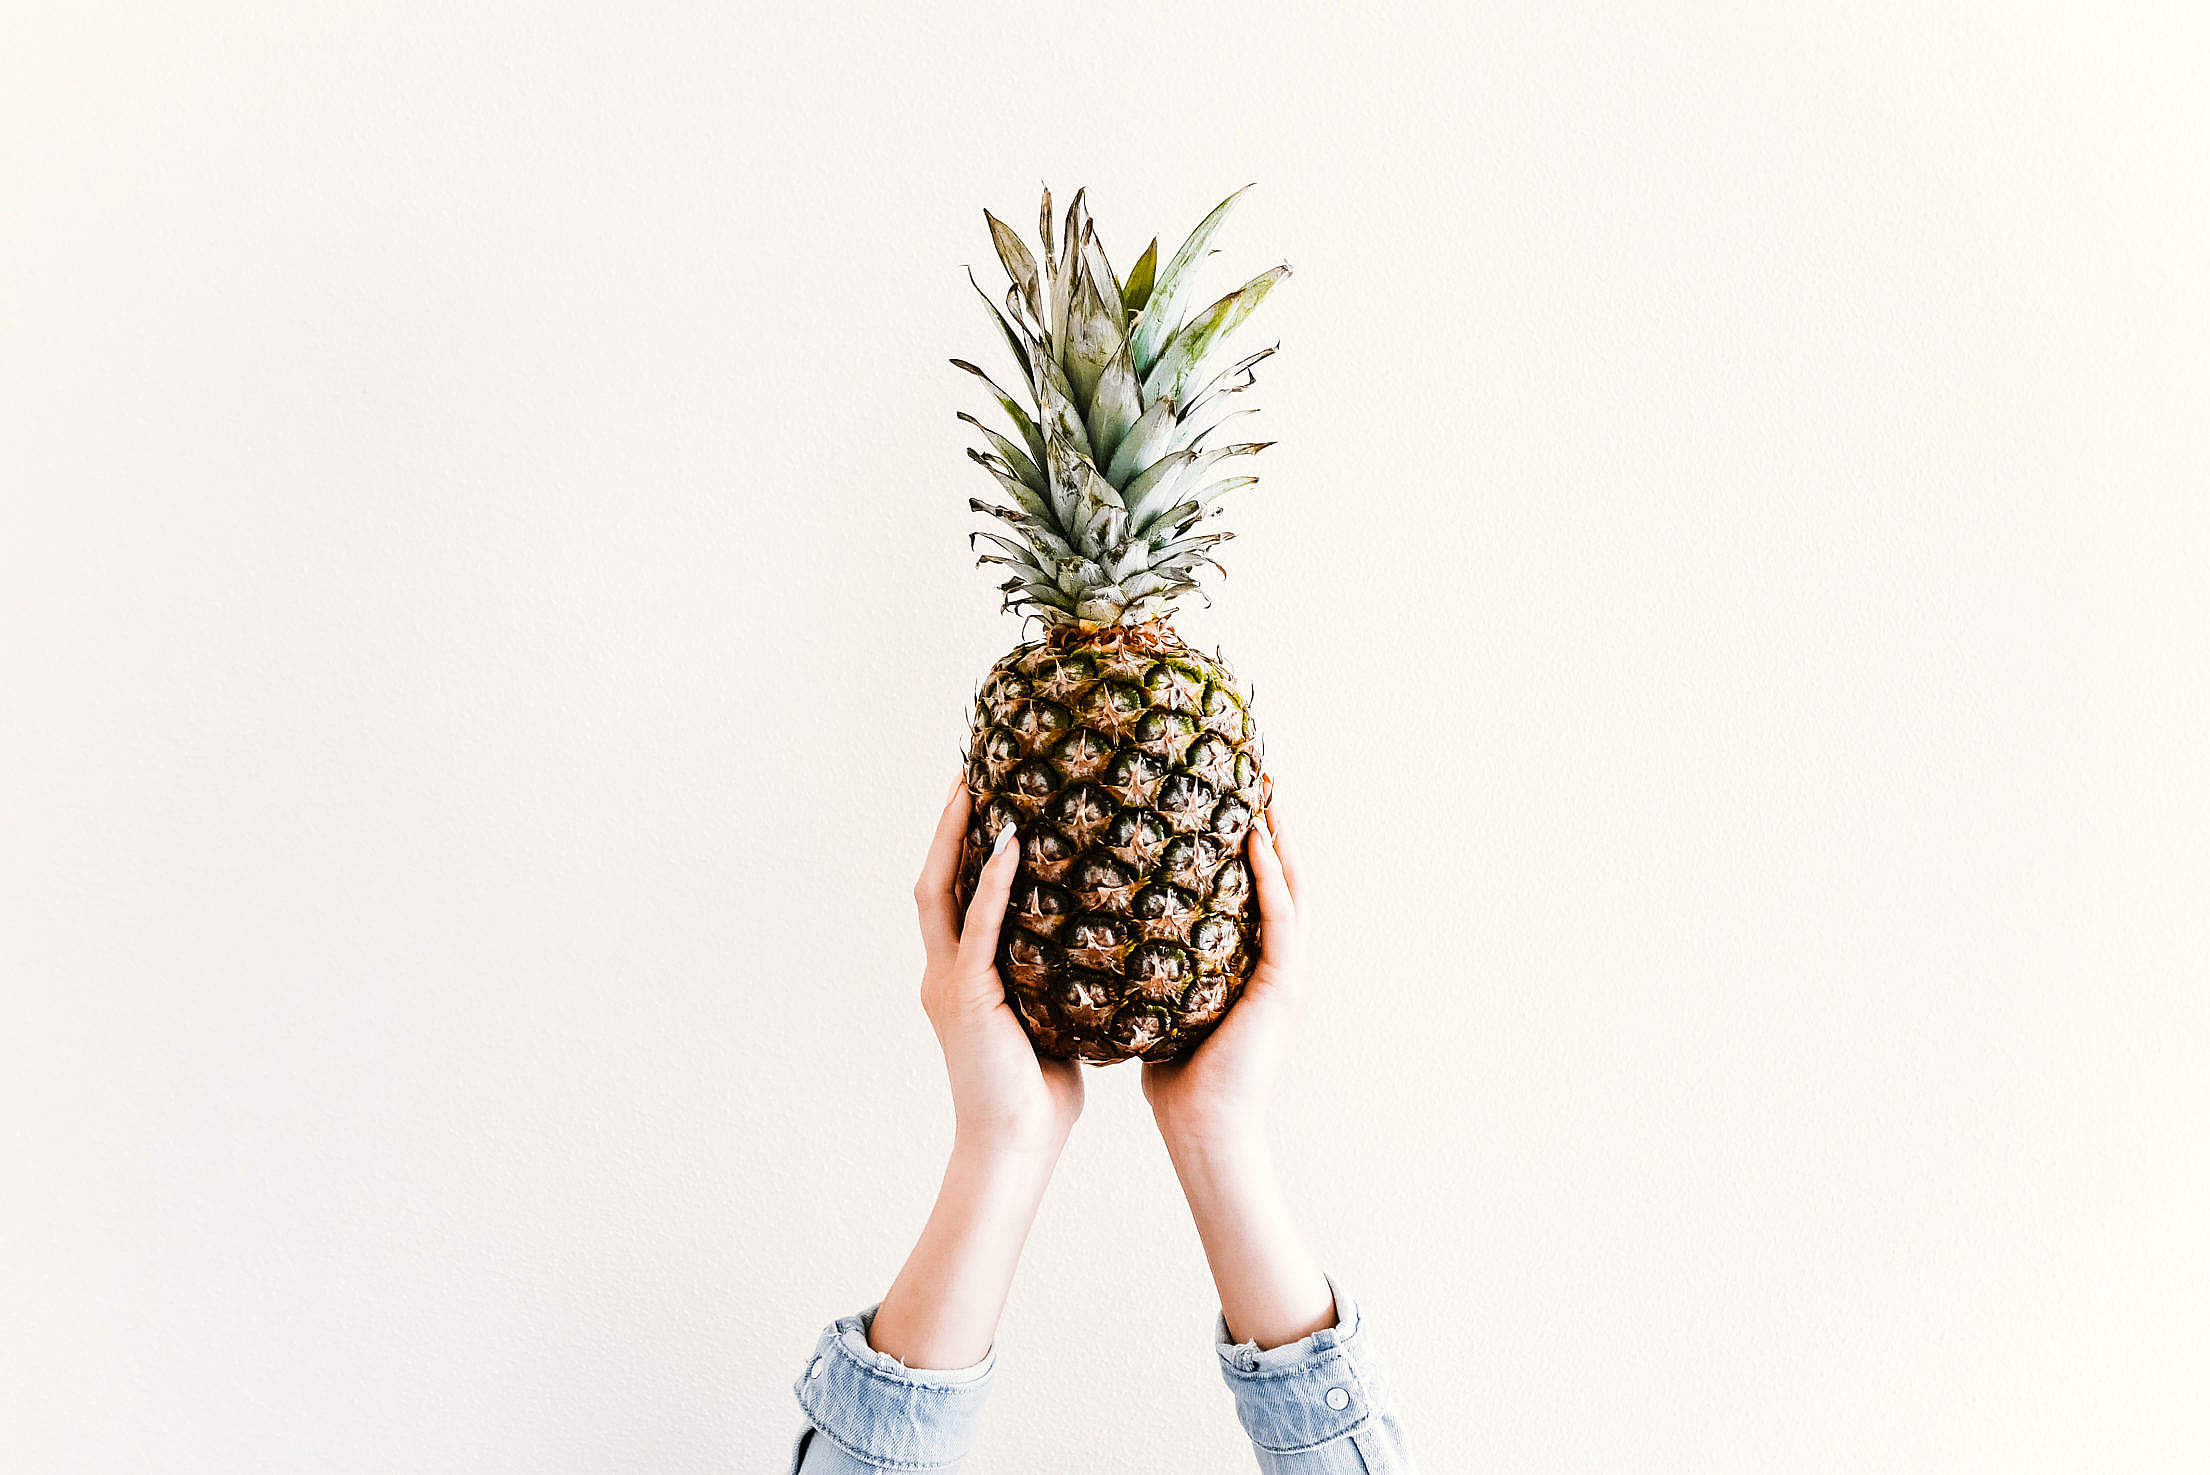 Fresh Ananas/Pineapple in Female Hands Free Stock Photo